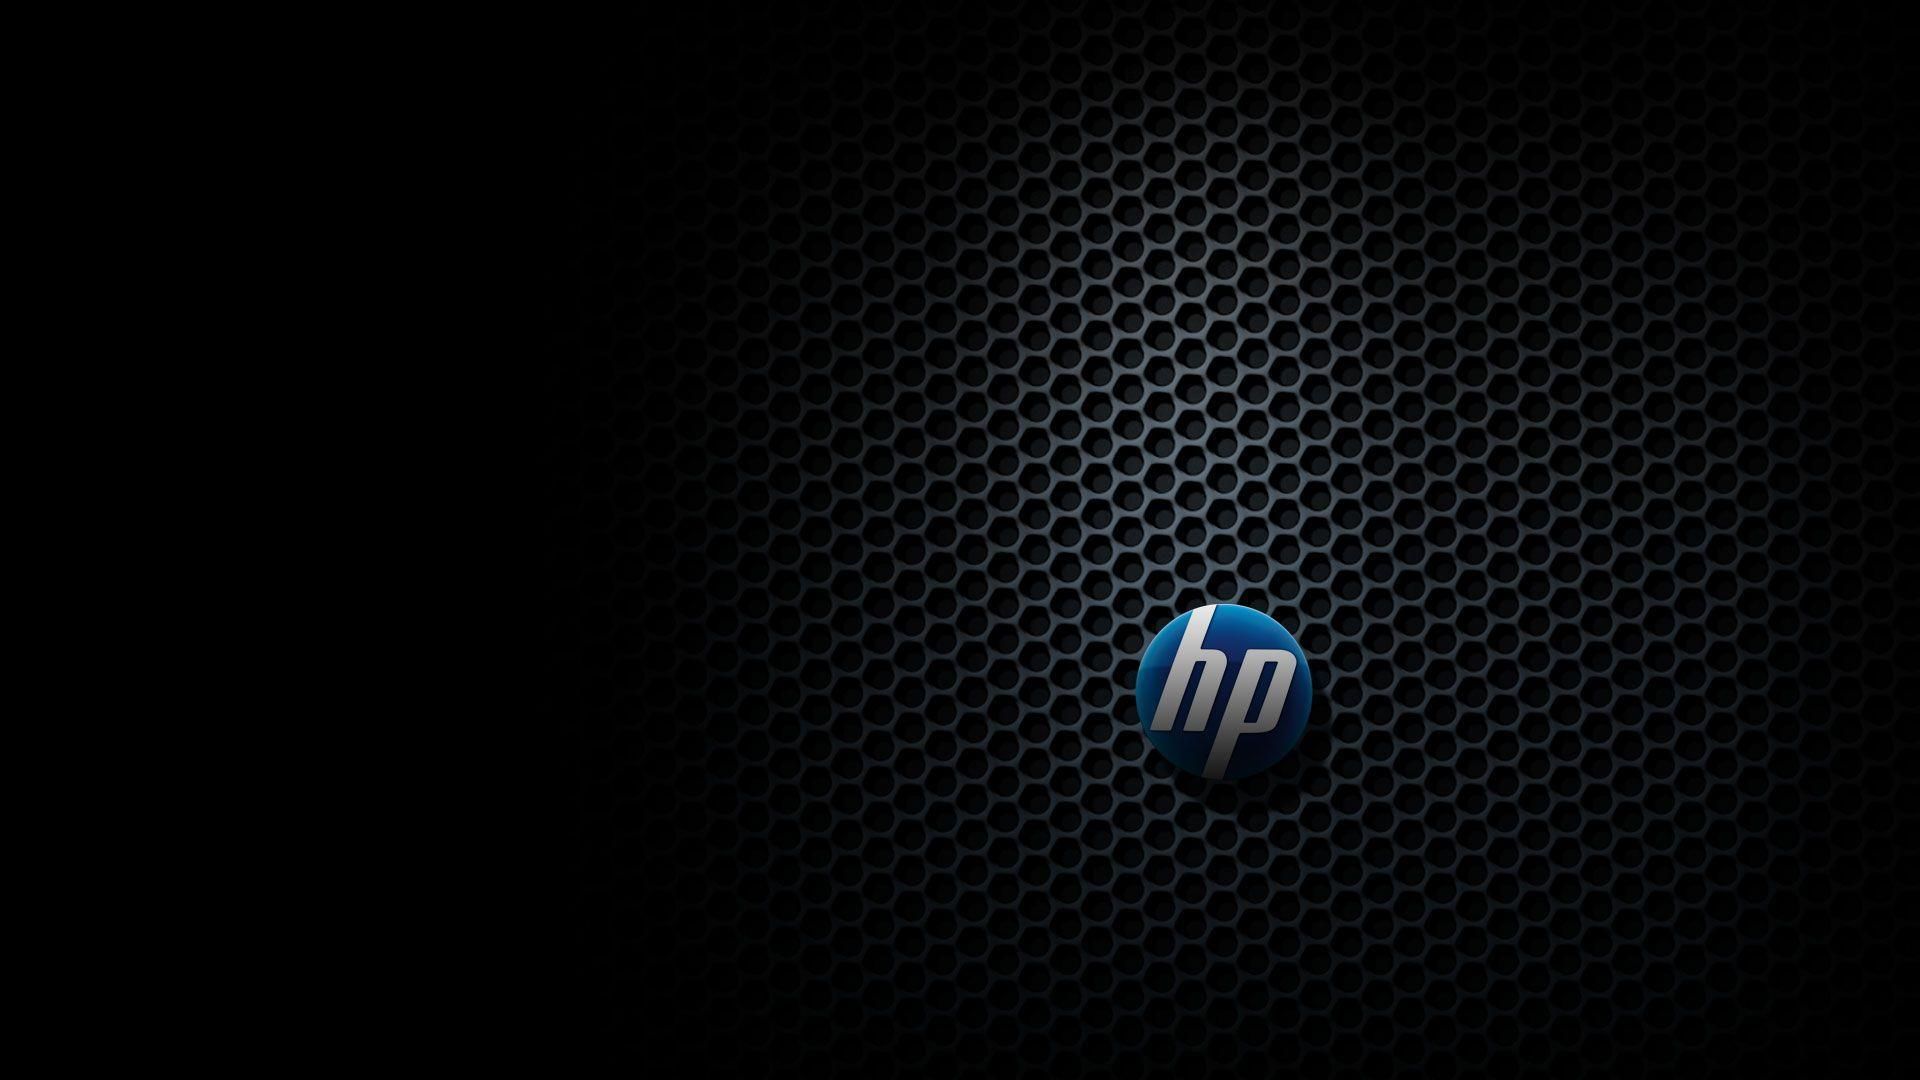 Hp Wallpaper Hd Design Ideas Wallpapers Pavilion Laptops